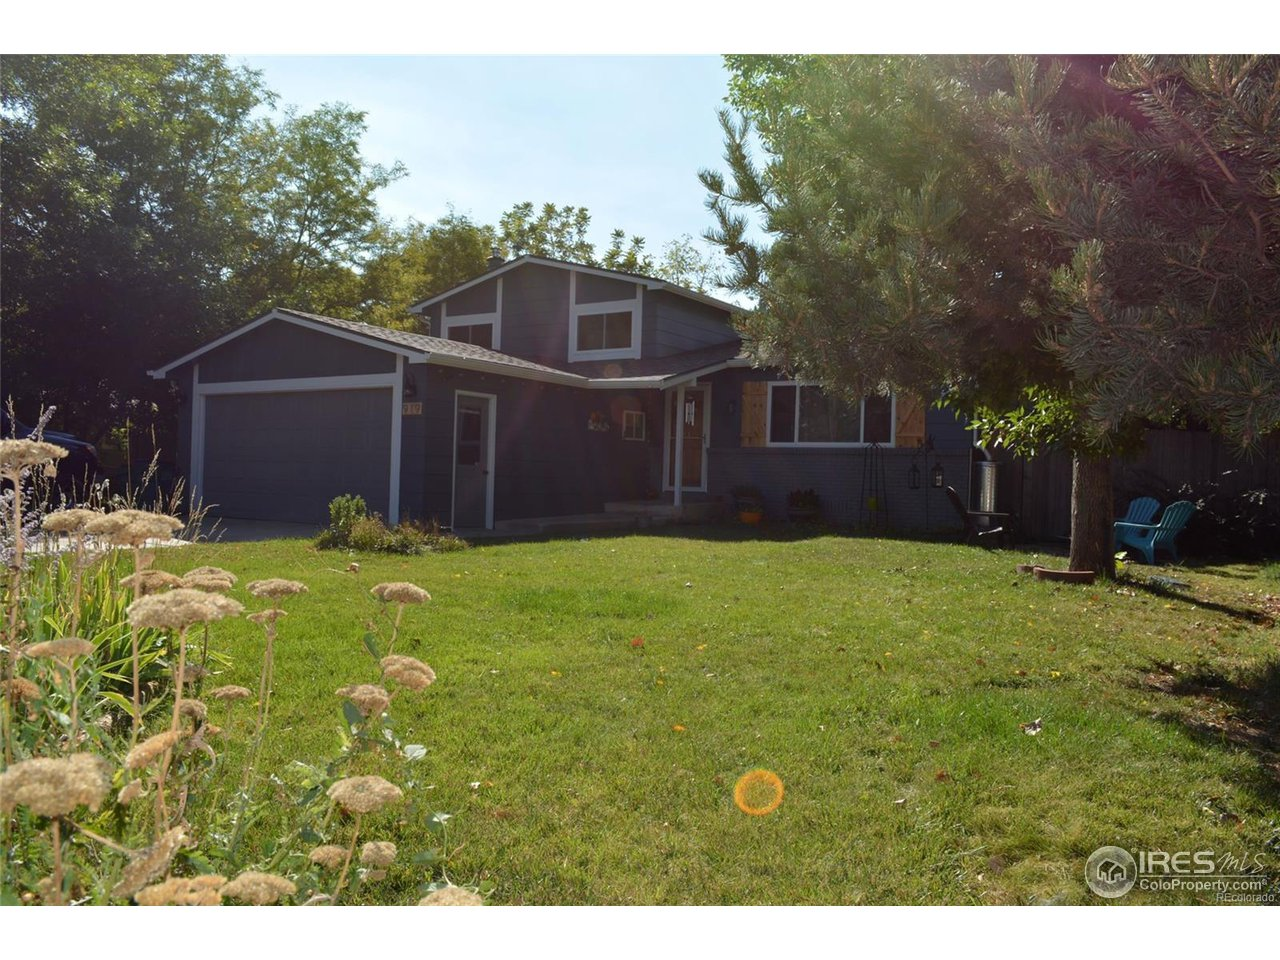 919 Coulter St, Fort Collins CO 80524